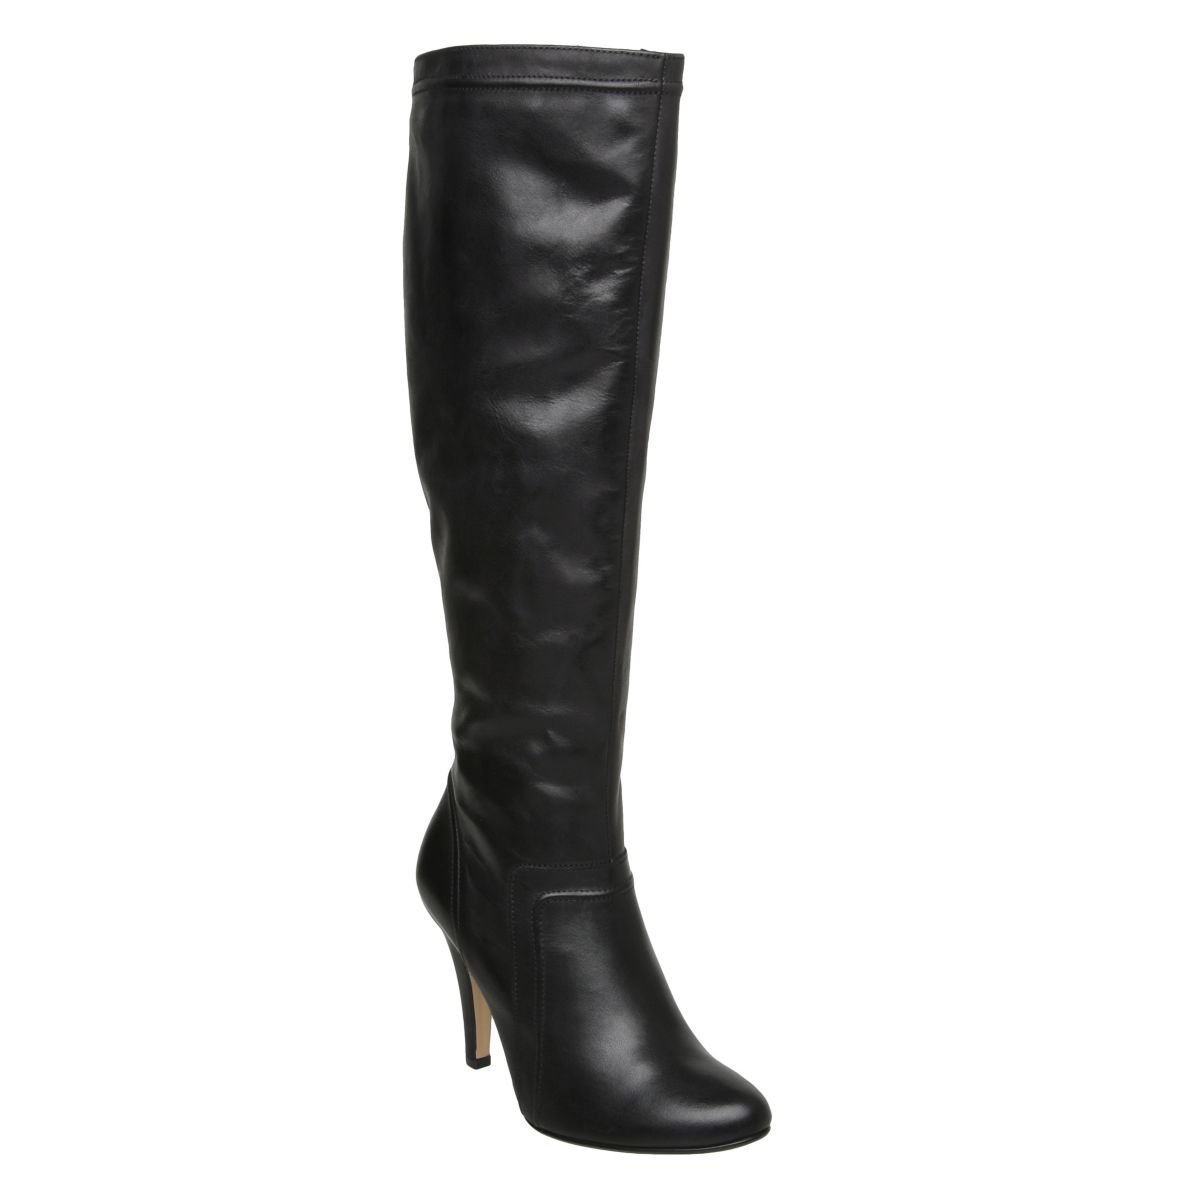 DUNE-SAFFI-WOMENS-BLACK-LADIES-LEATHER-STILETTO-HEELED-KNEE-HIGH-BOOTS-SIZE-3-8